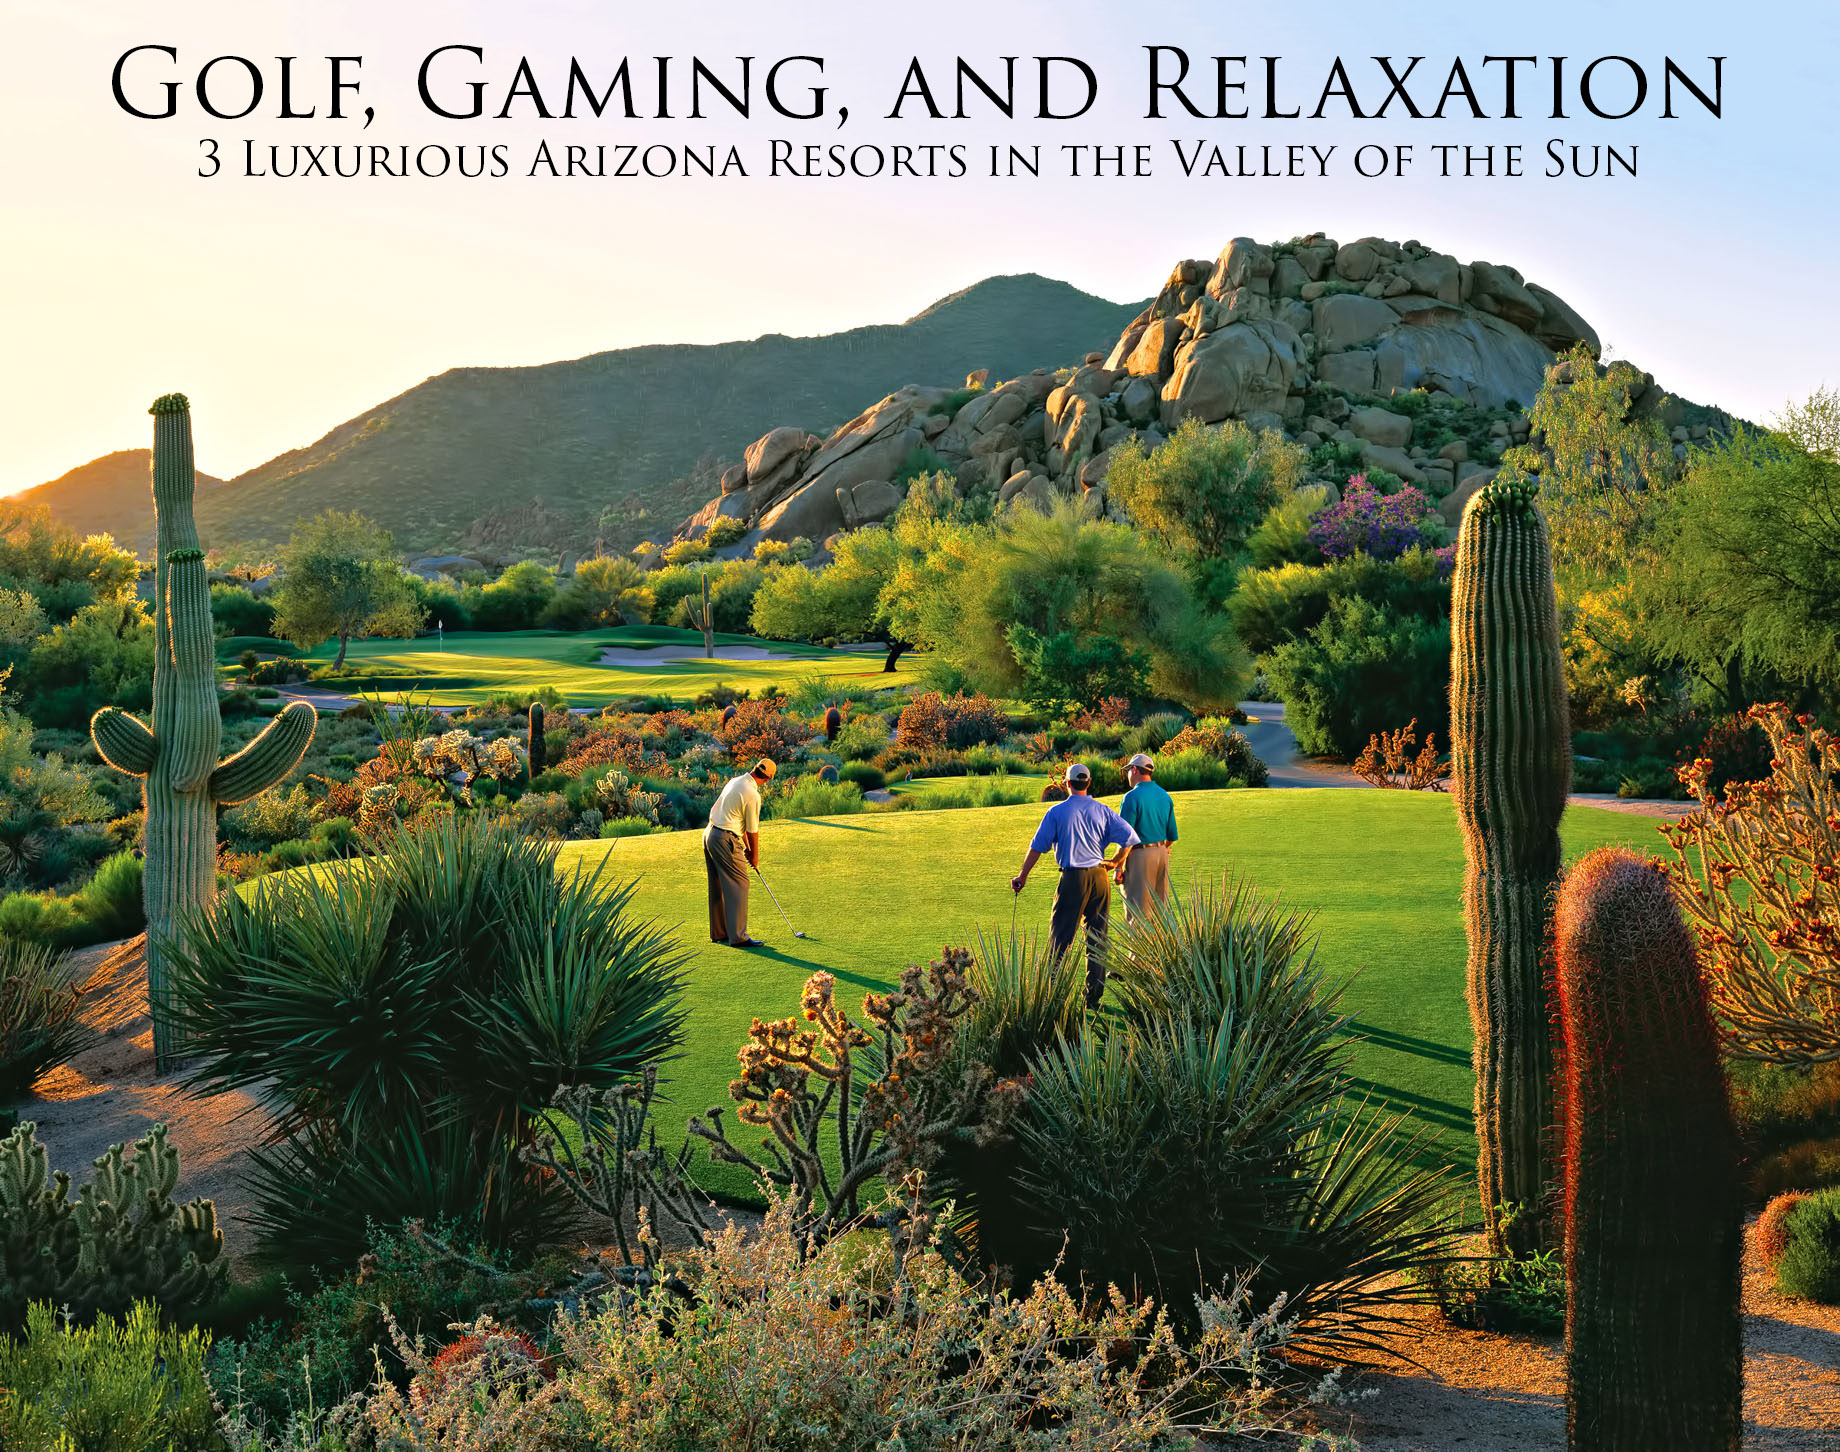 Golf, Gaming, and Relaxation - 3 Luxurious Arizona Resorts in the Valley of the Sun